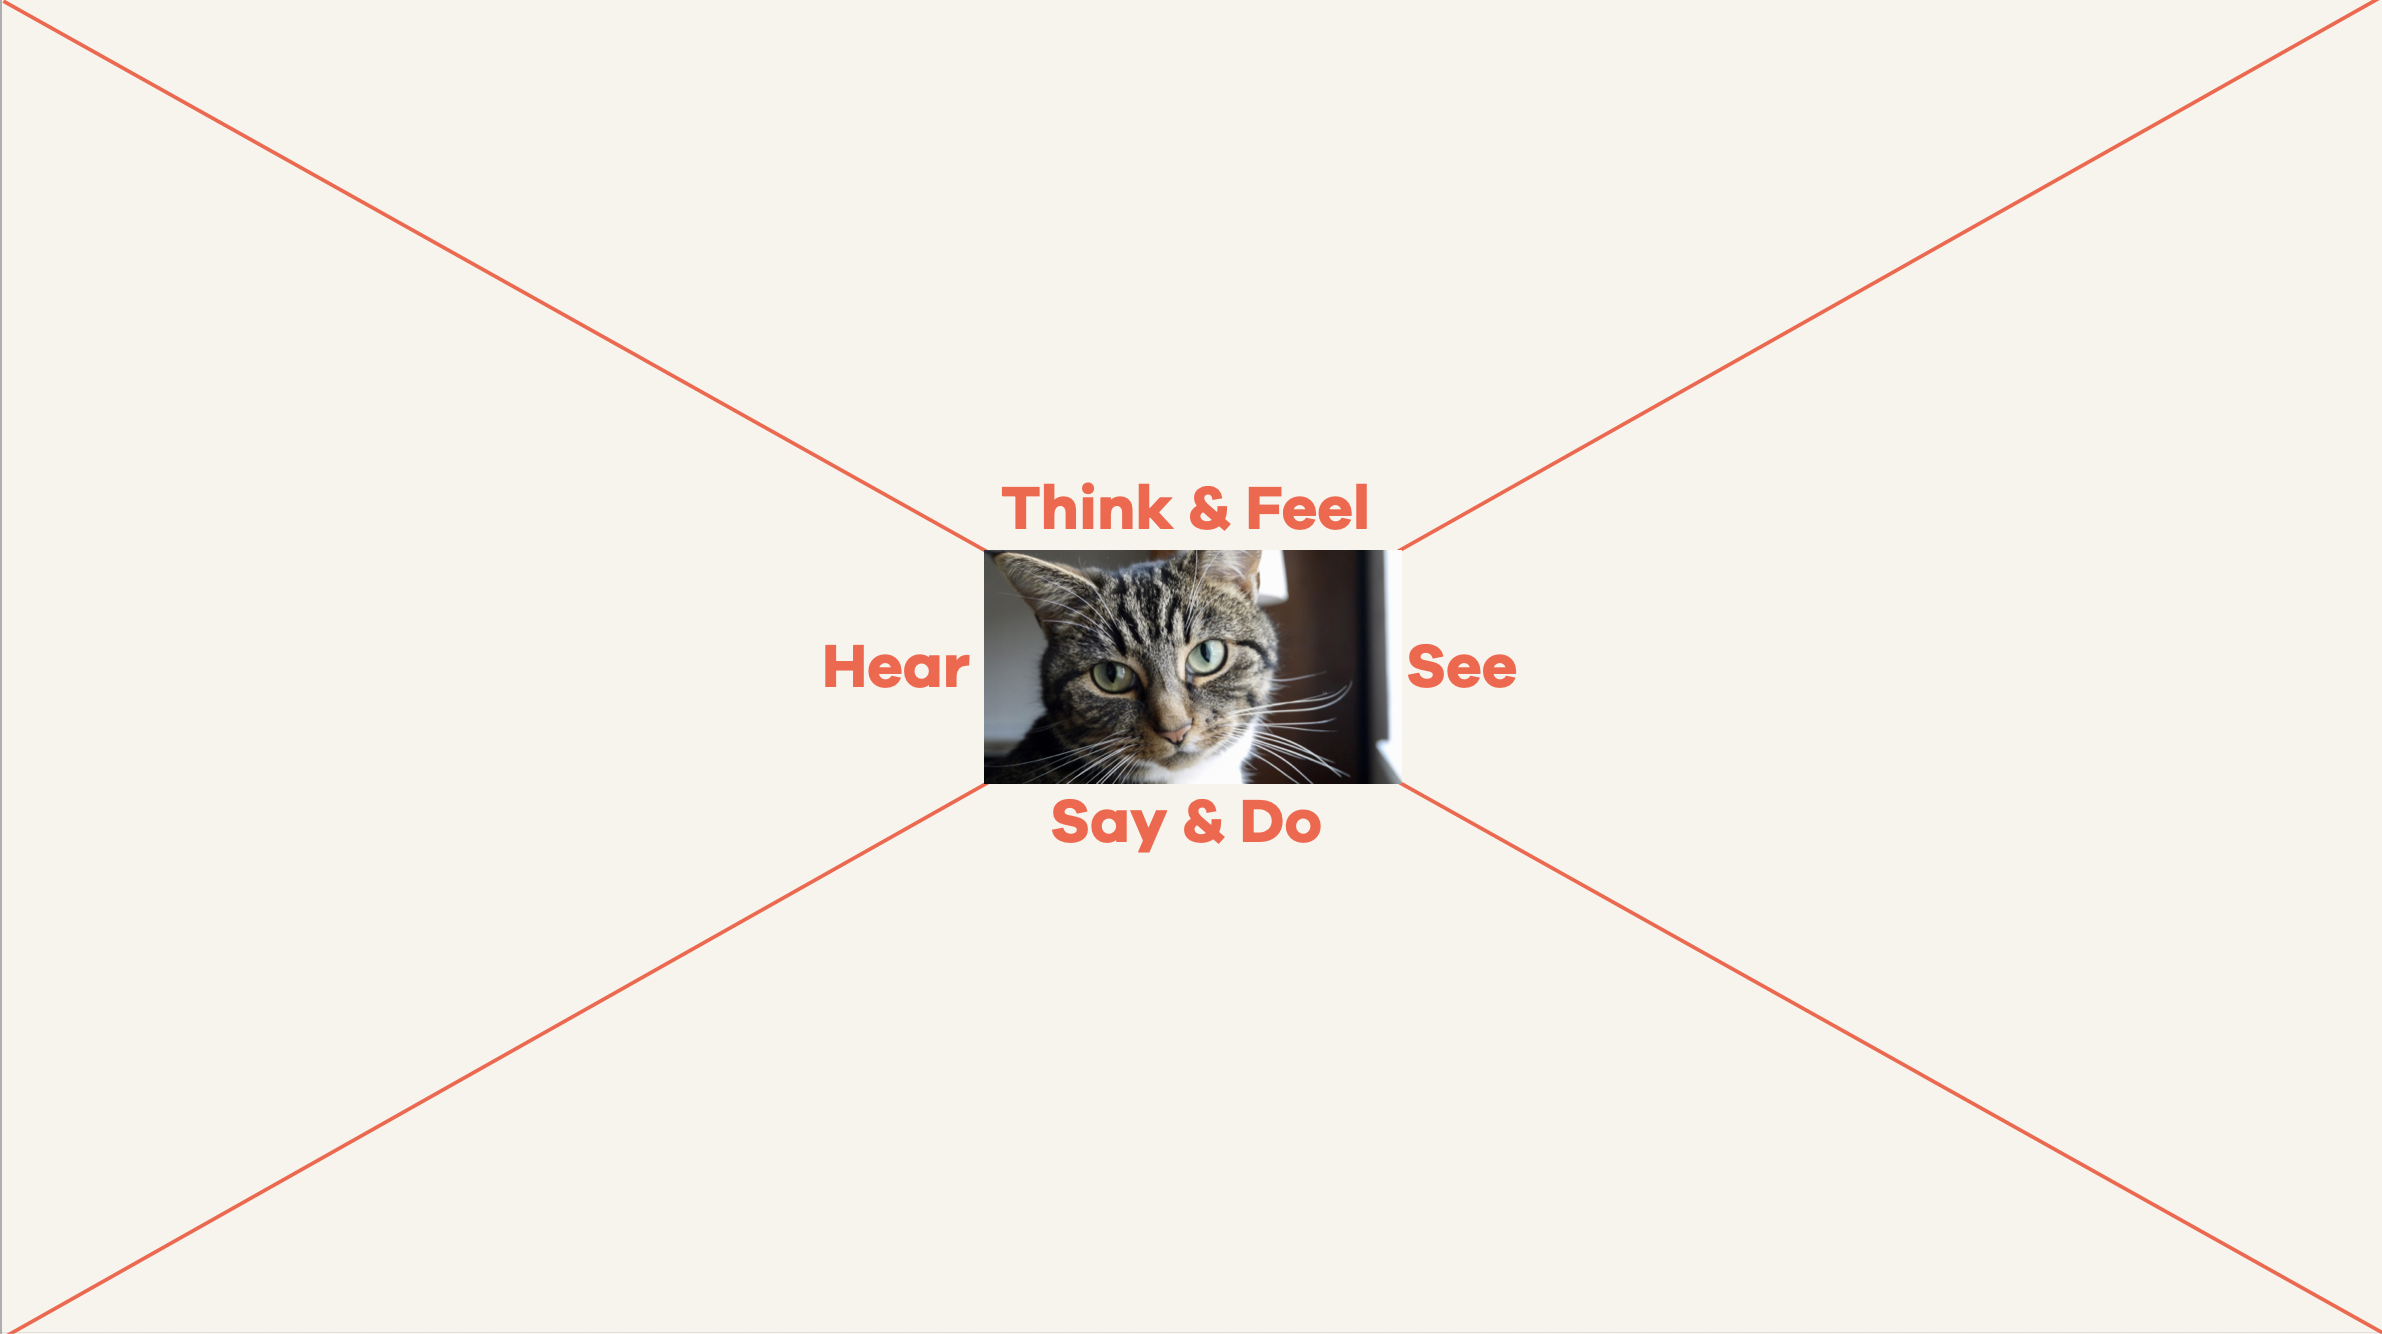 An image of a basic empathy map, with four quadrants divided into Hear, See, Think and Feel, Say and Do.